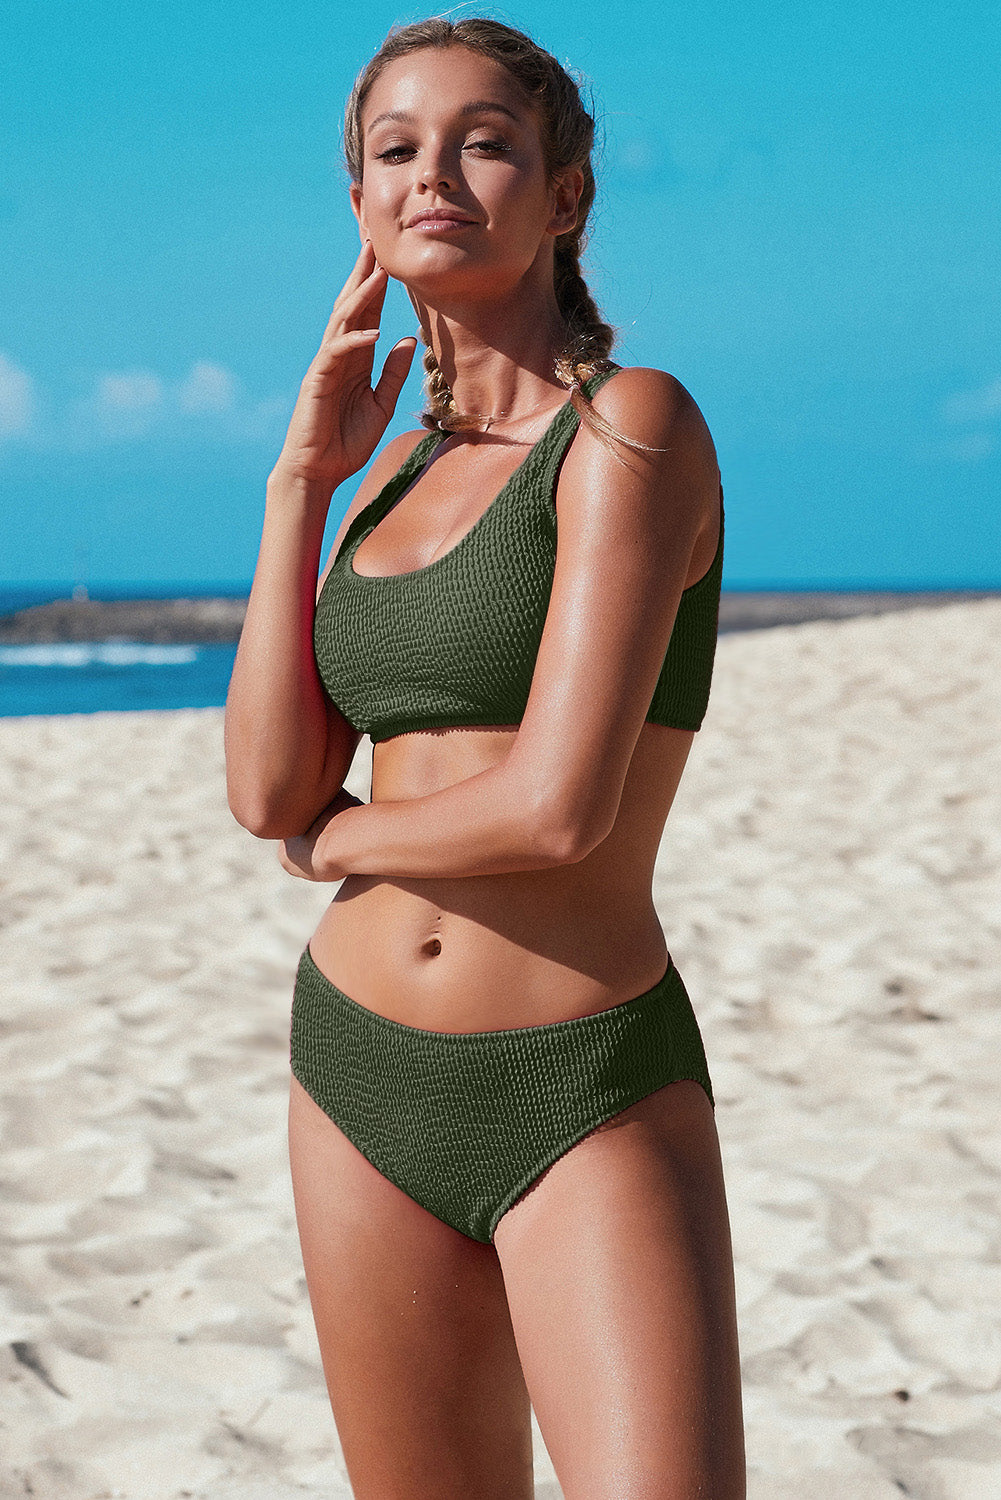 Green Scoop Neck Crop Top Mid Rise Bottom Two-piece Swimsuit Bikinis Discount Designer Fashion Clothes Shoes Bags Women Men Kids Children Black Owned Business